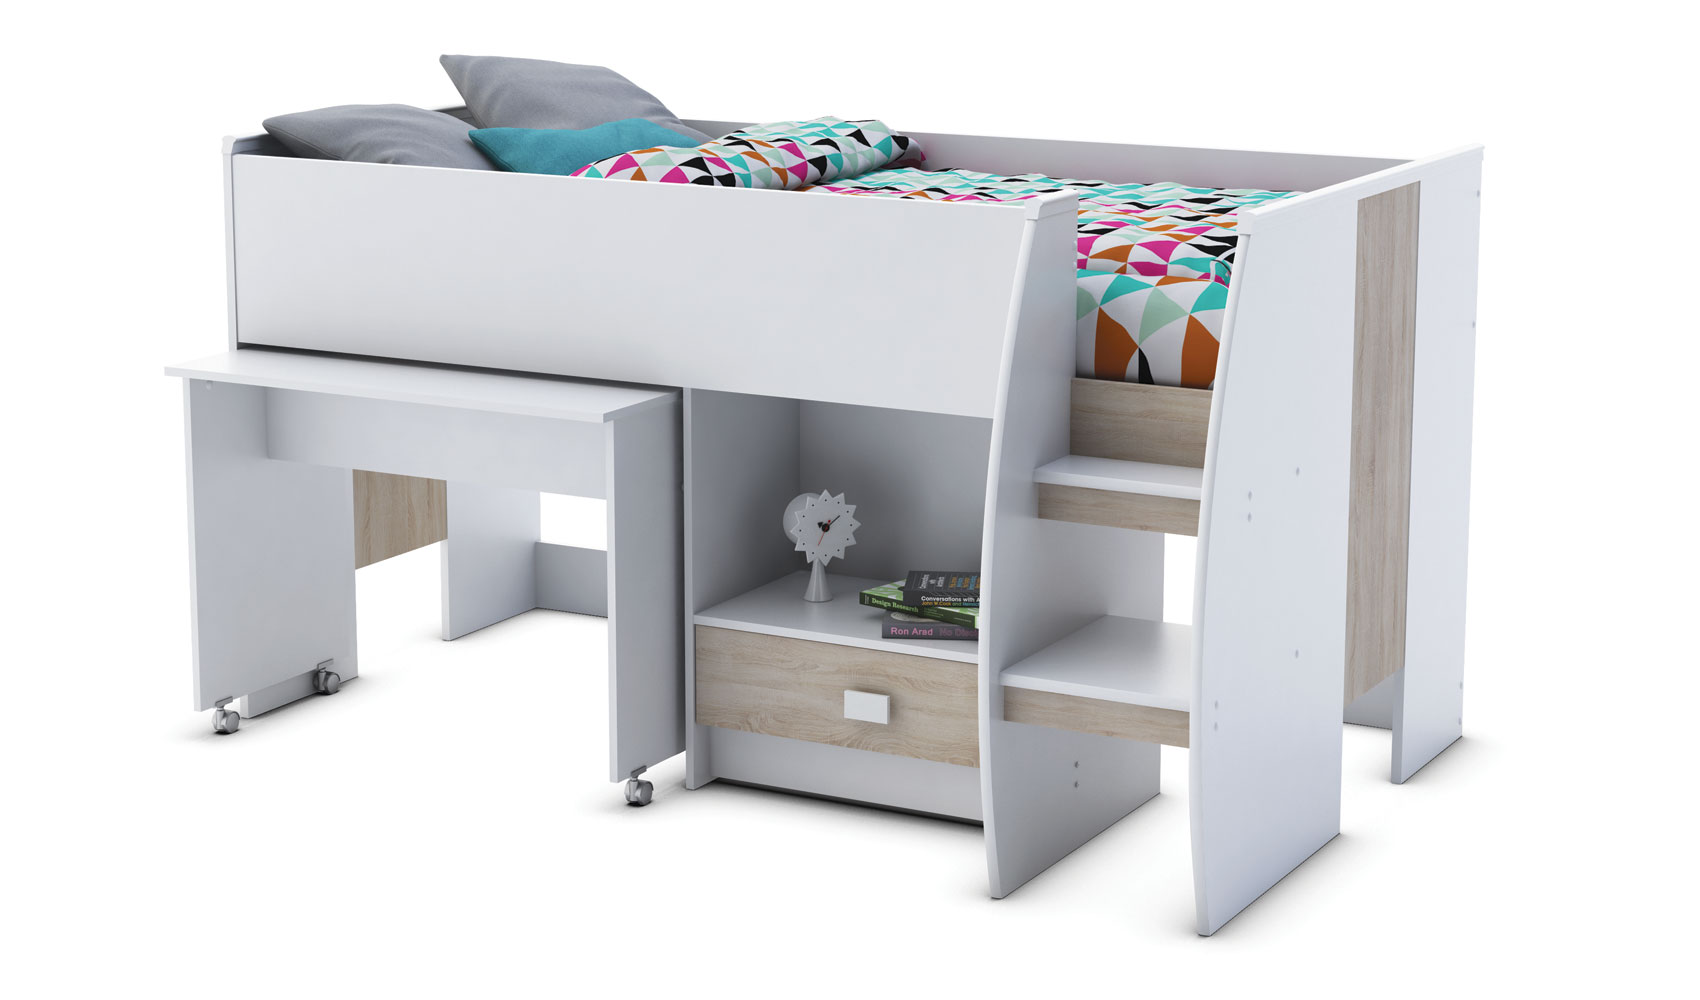 jugendbett hochbett kombibett wei spielbett kinder bett schreibtisch ebay. Black Bedroom Furniture Sets. Home Design Ideas